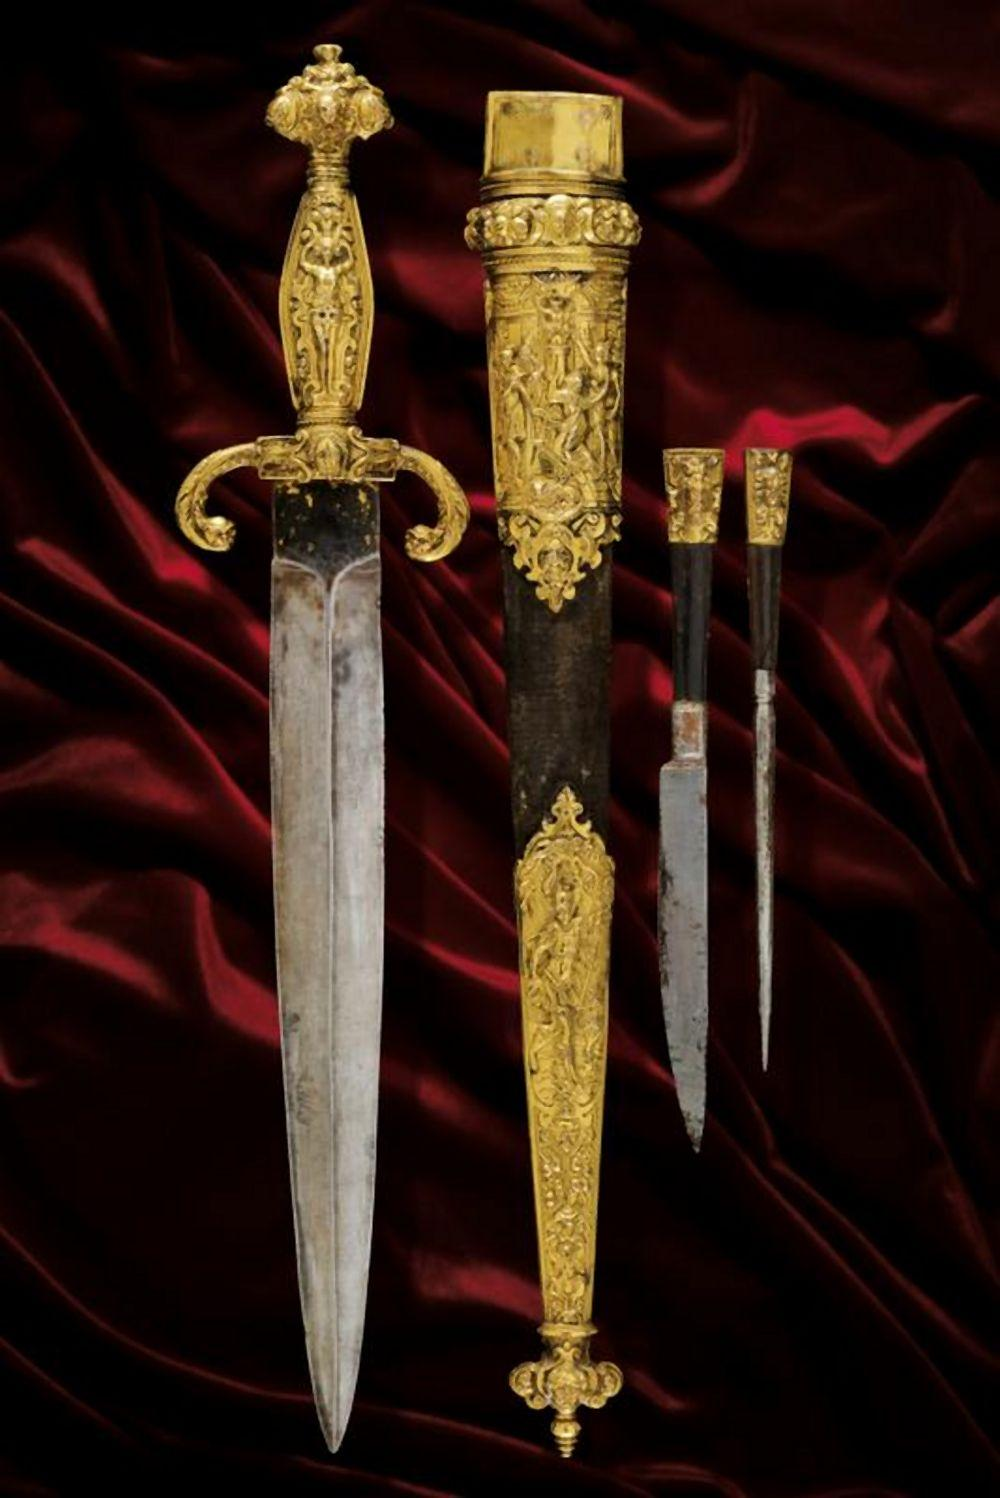 An outstanding and extremely rare Renaissance dagger